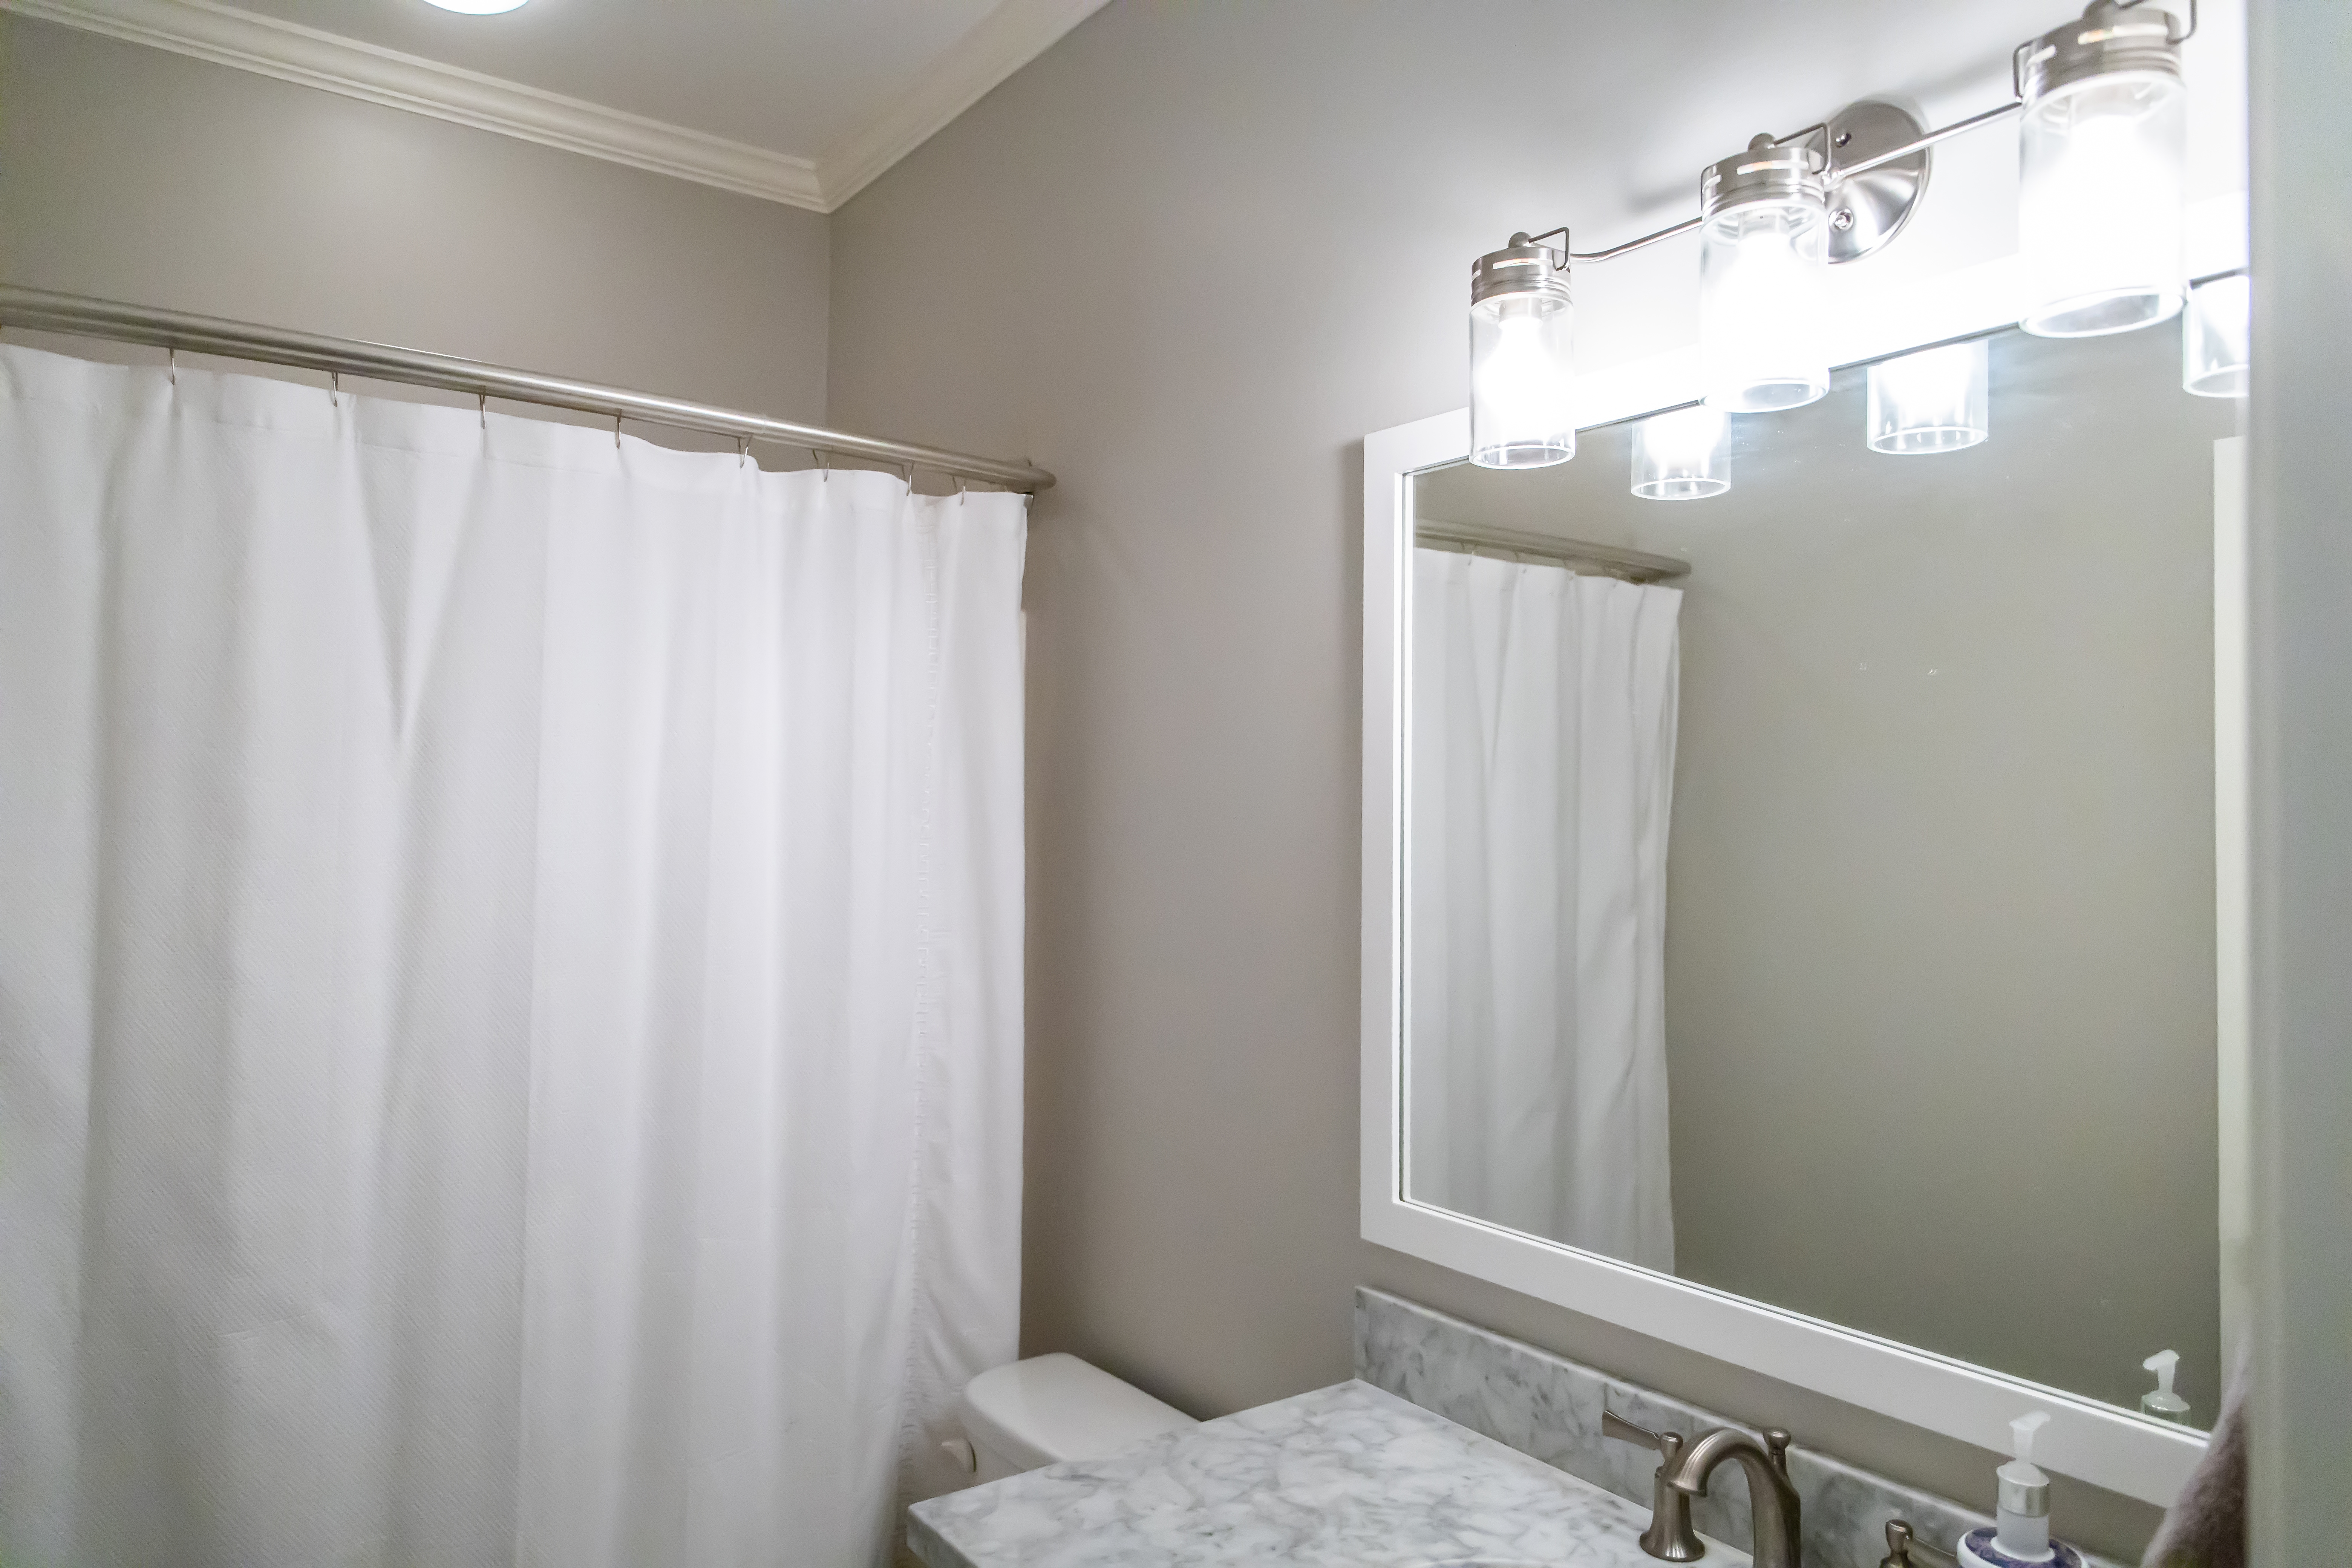 Small Bathroom Decorating Ideas - White Shower Curtain